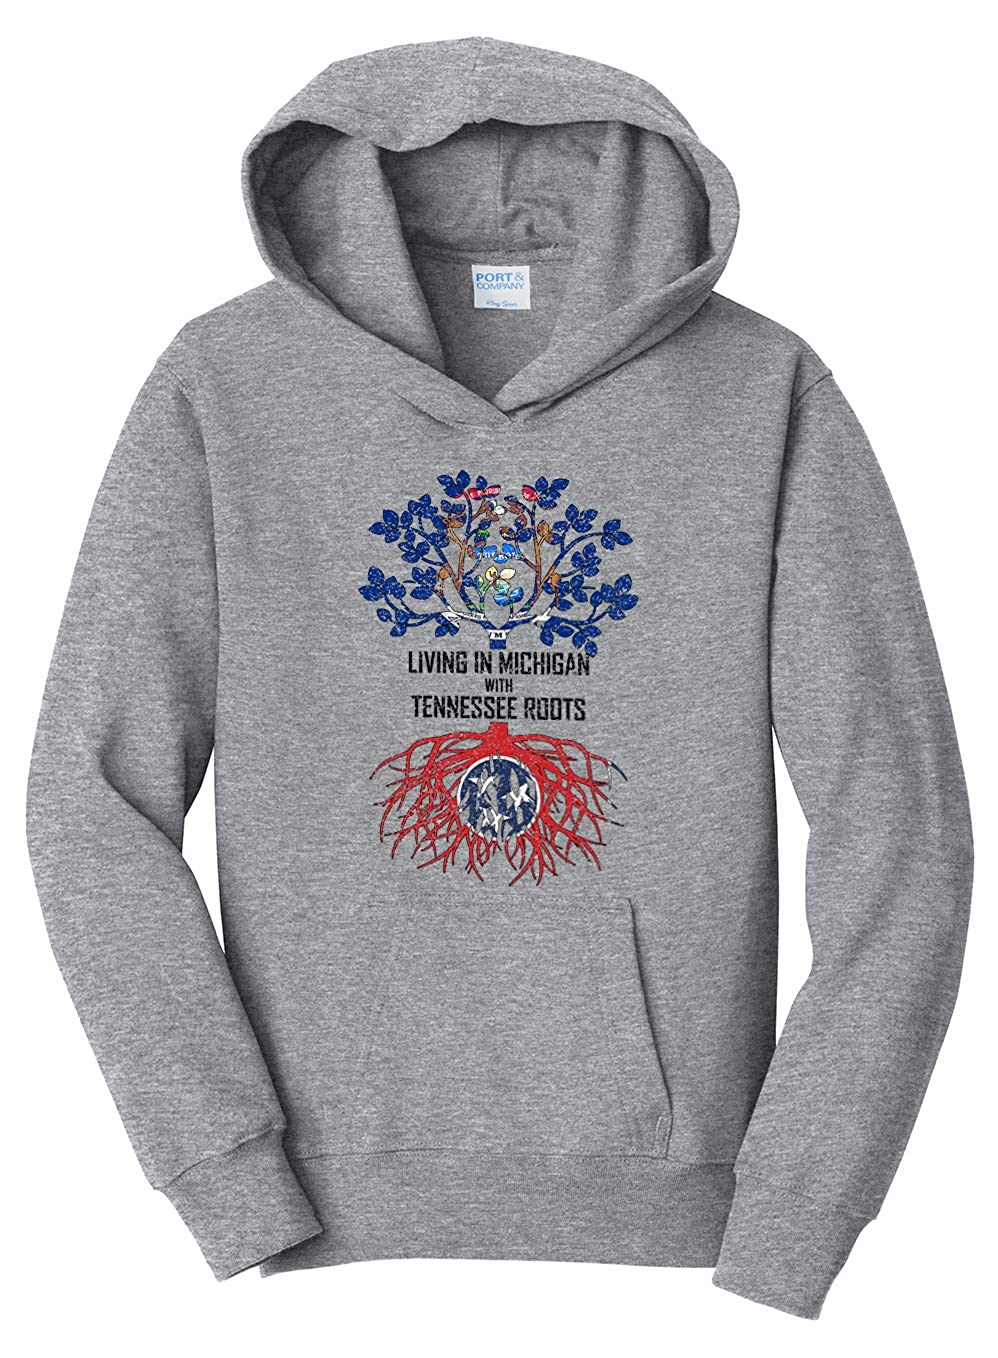 Tenacitee Girls Living in Michigan with Tennessee Roots Hooded Sweatshirt